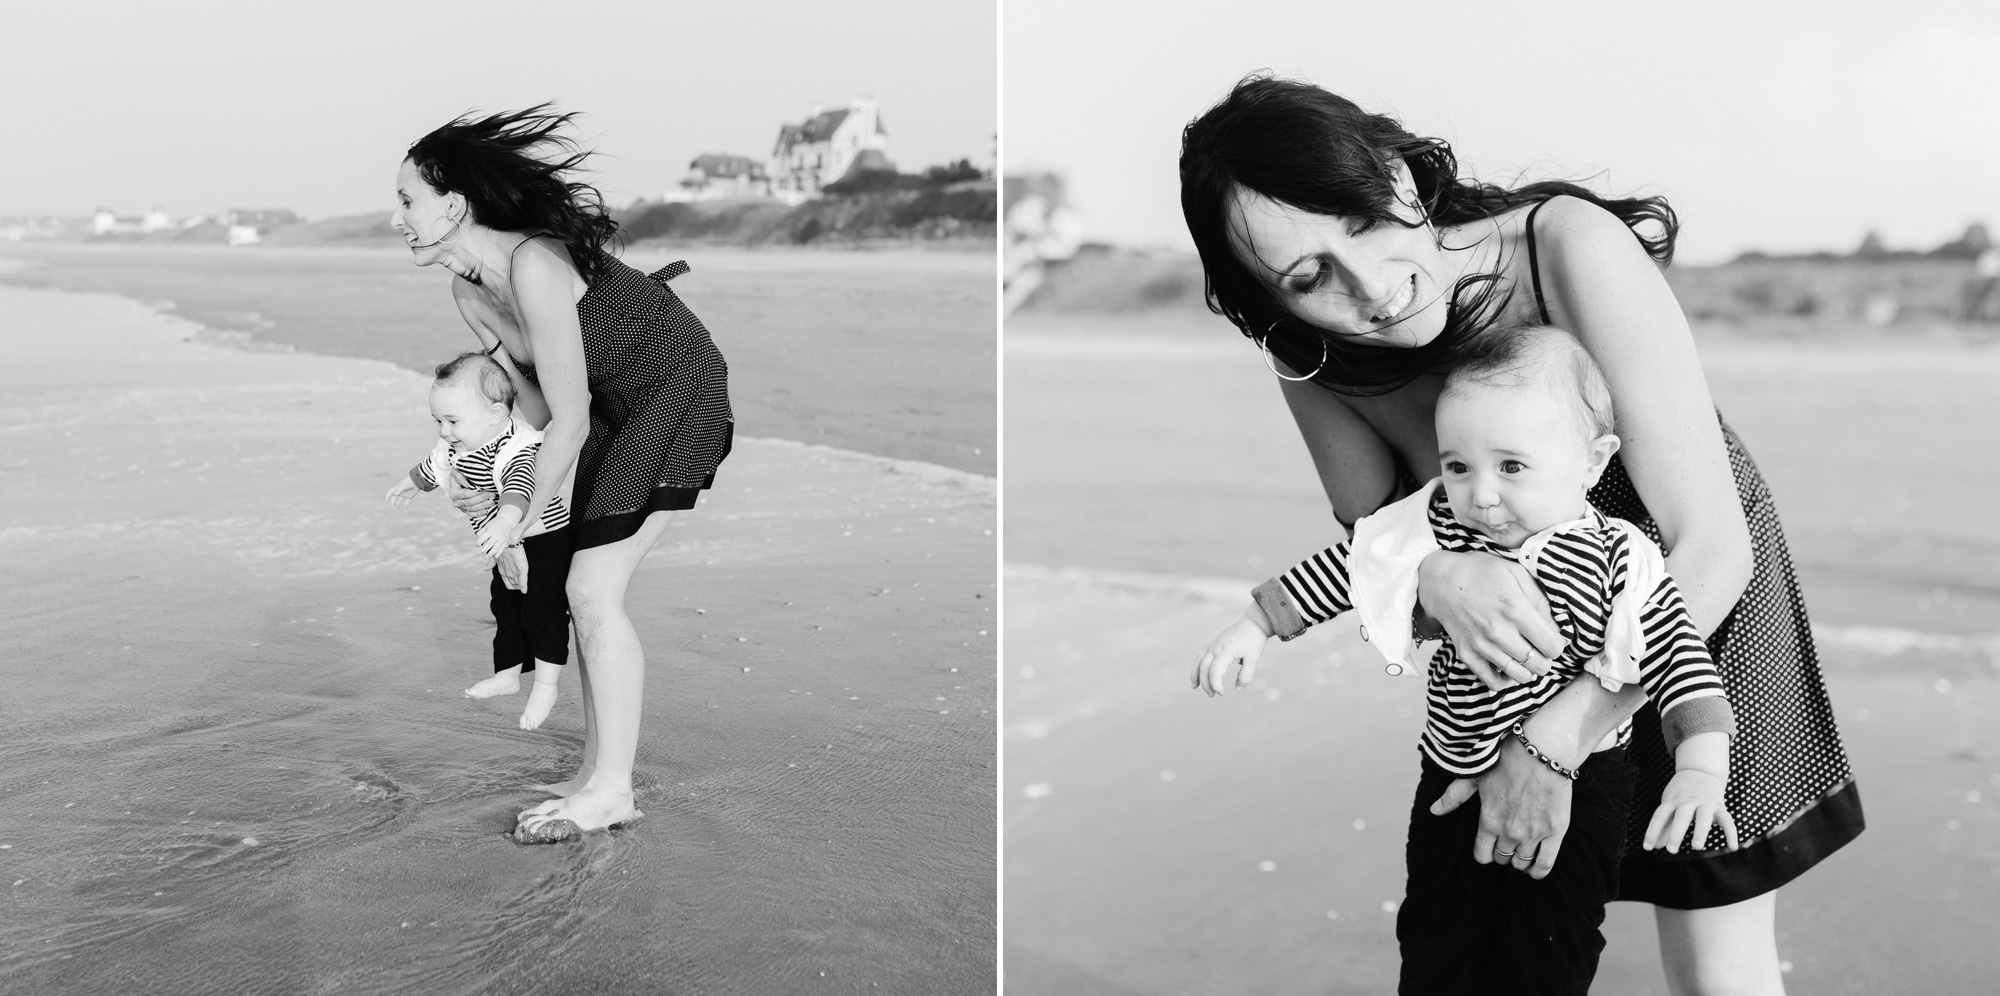 séance famille cabourg basse normandie photographe shooting lifestyle-16